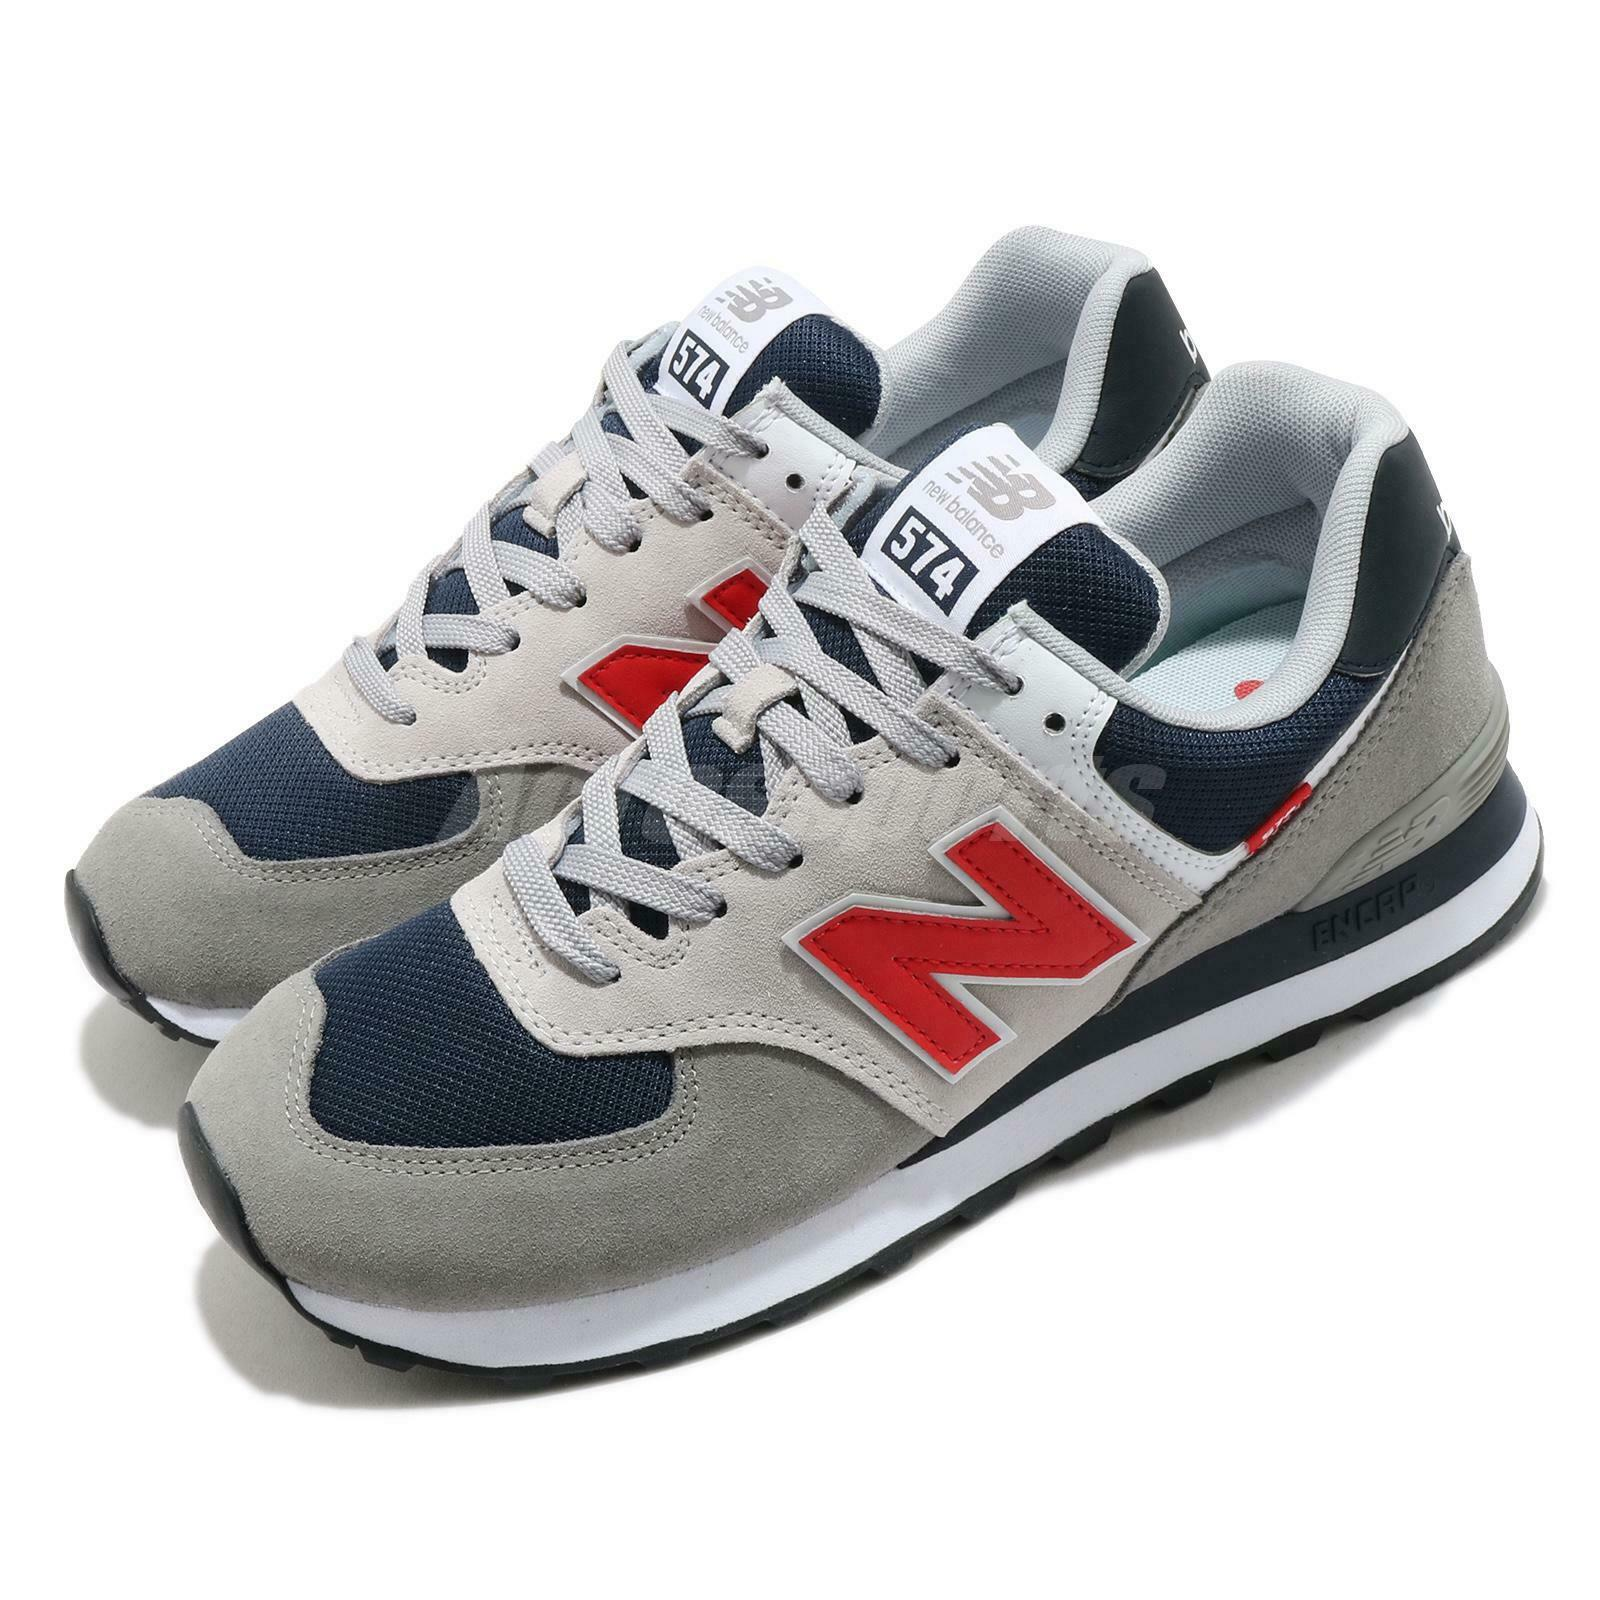 New Balance 574 Grey Red Navy White Men Casual Lifestyle Shoe Sneaker ML574SO2 D